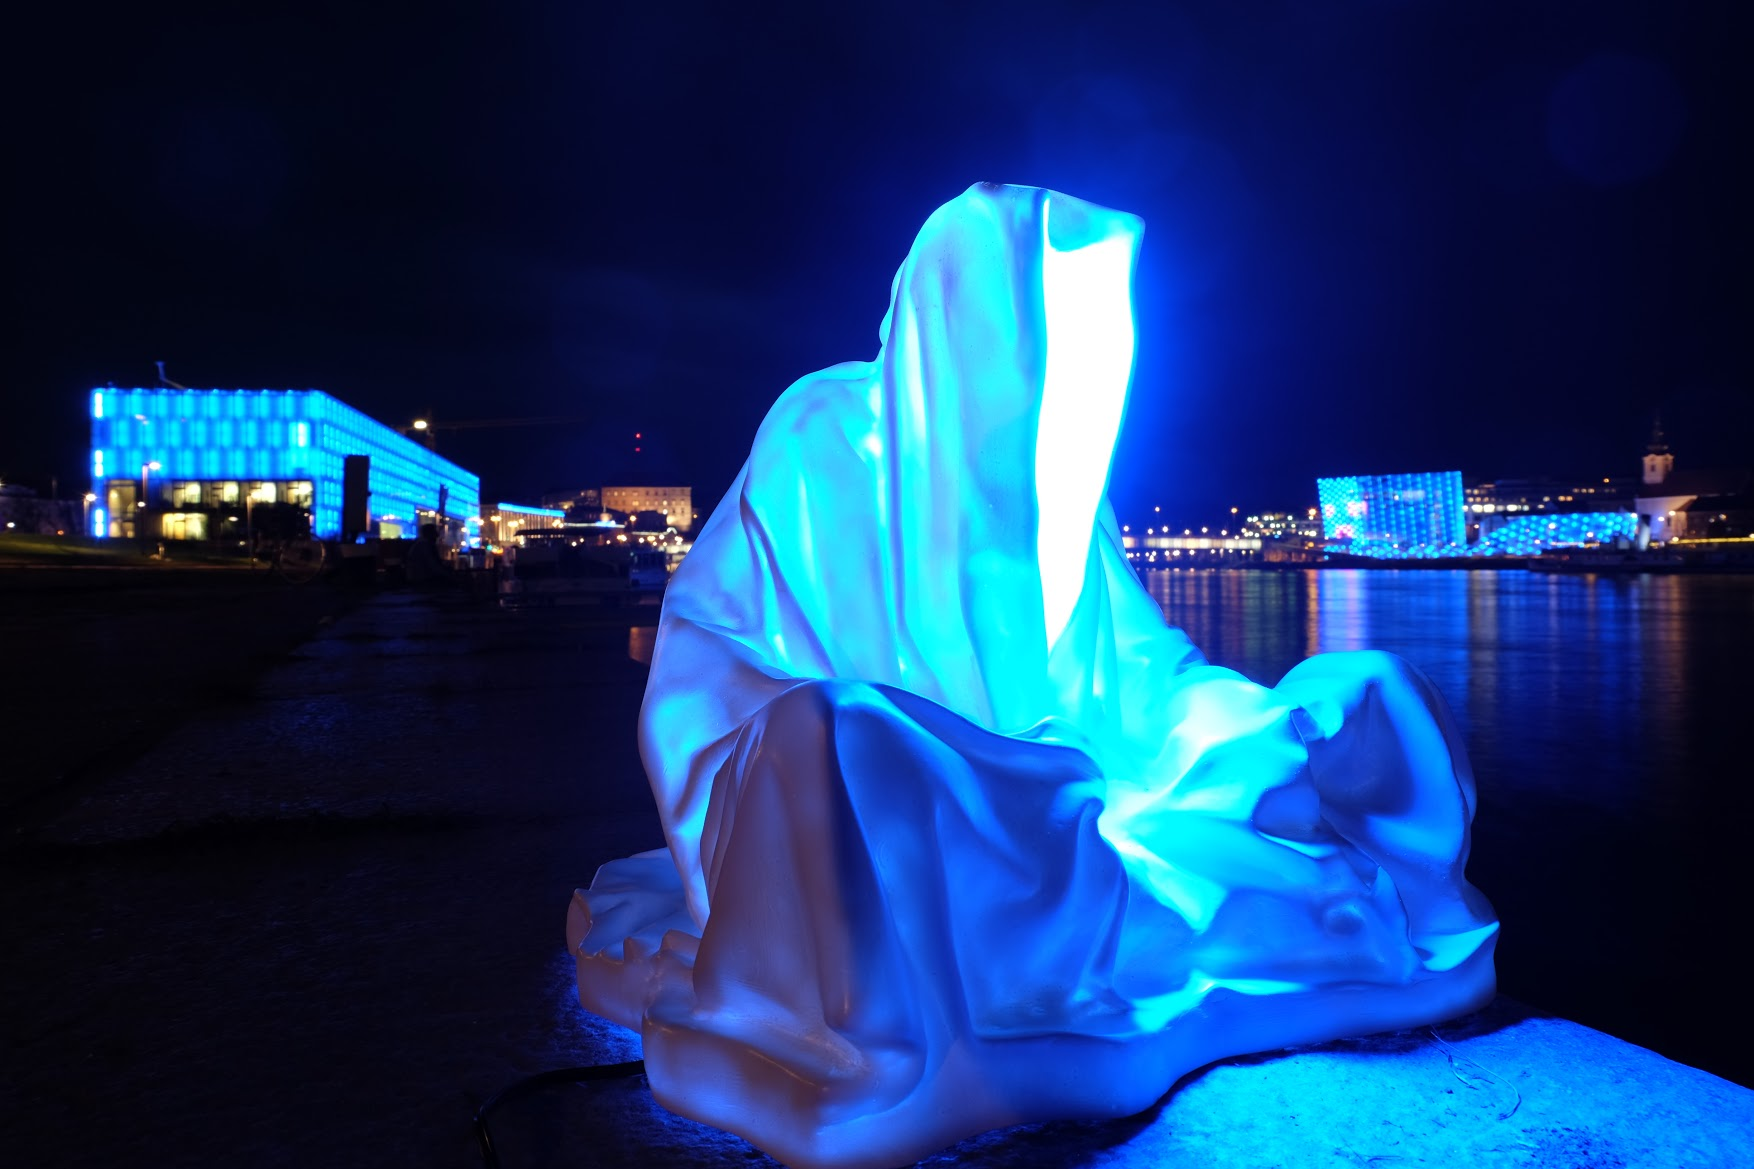 guardians of time manfred kielnhofer linz light art contemporary art sculpture statue modern design lamp light lumina 1785